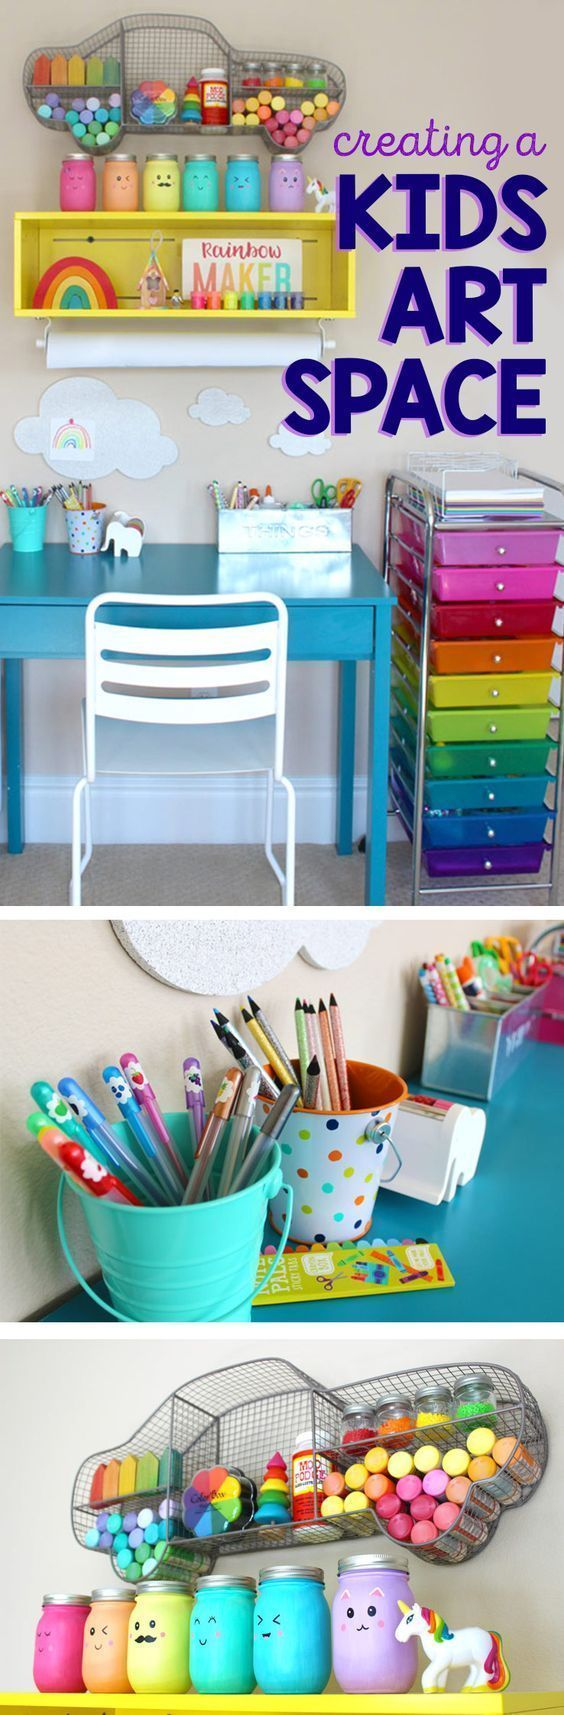 Creating a kids art space- tips & ideas!